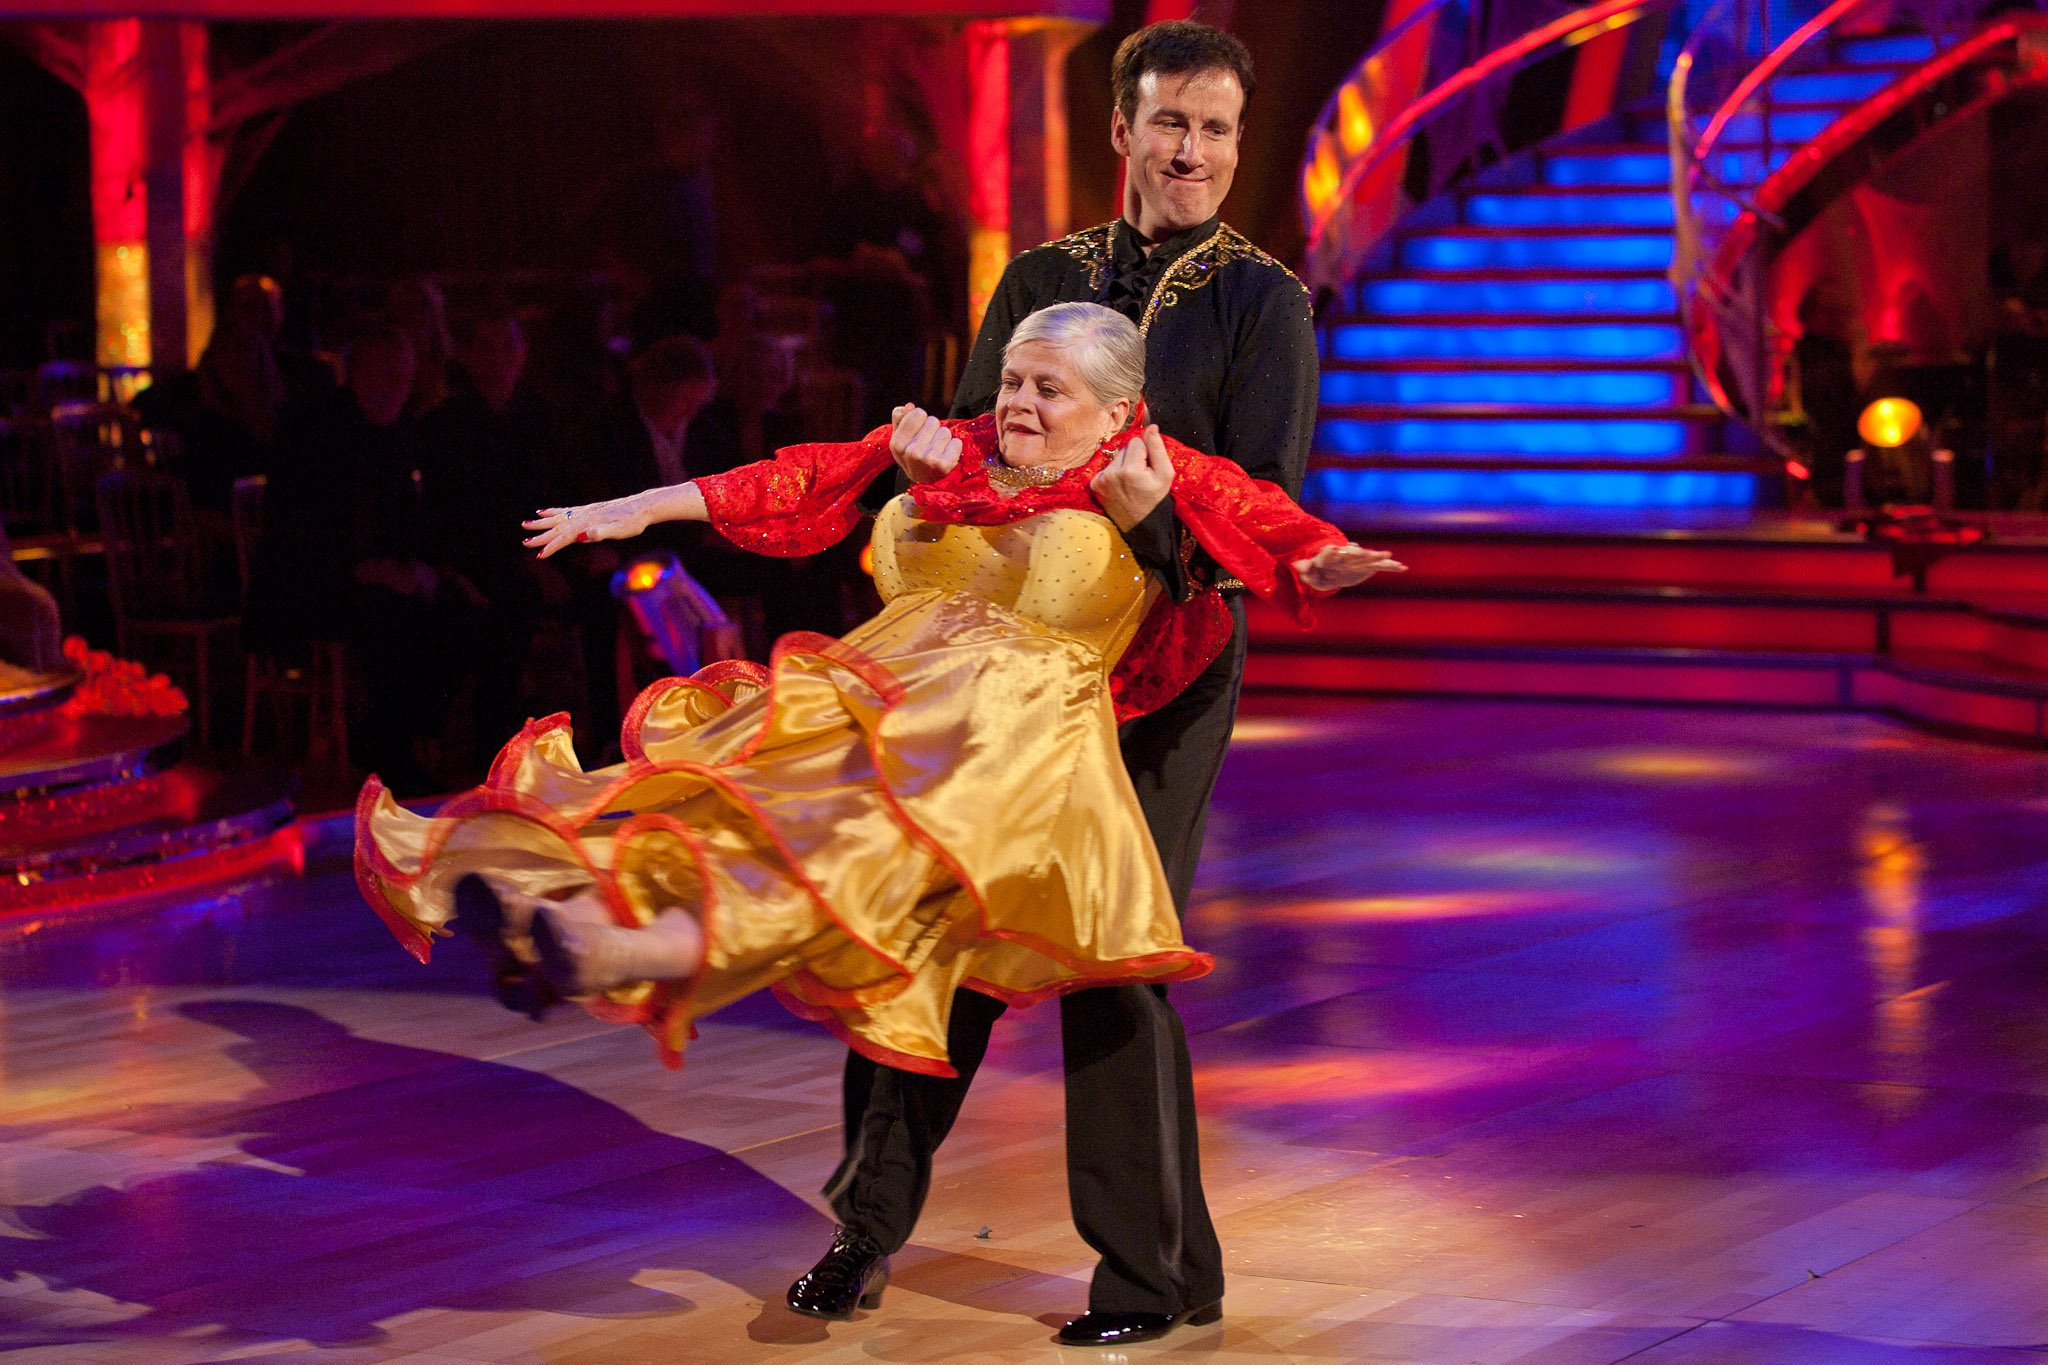 Anton Du Beke hoists Ann Widdecombe in a garish dress last year Television programmes: Strictly Come Dancing The Rt Hon Ann Widdecombe and Anton Du Beke DANCE: Paso Doble